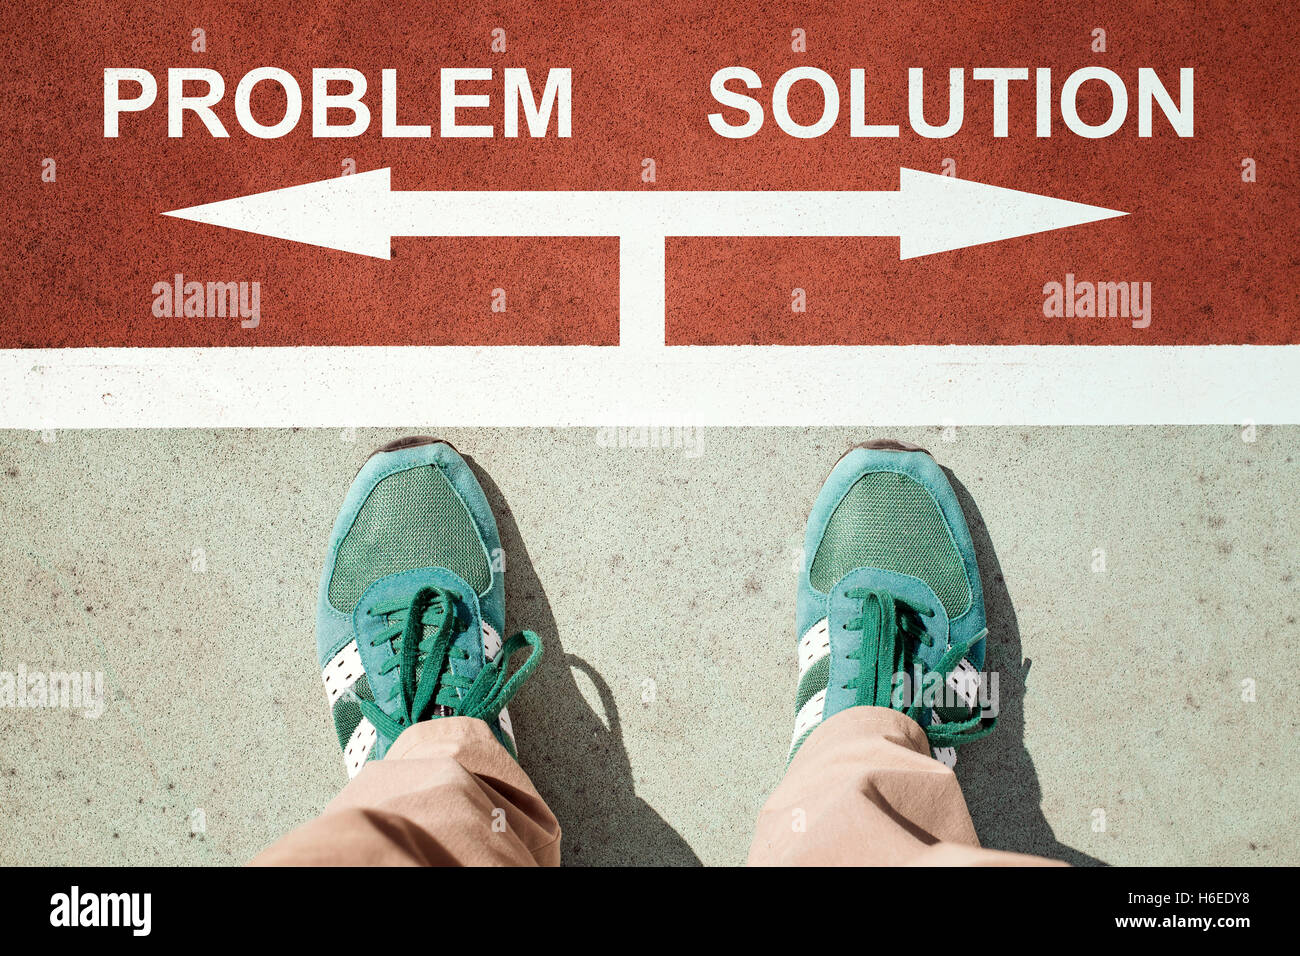 Problem or solution concept with legs from above standing on signs - Stock Image